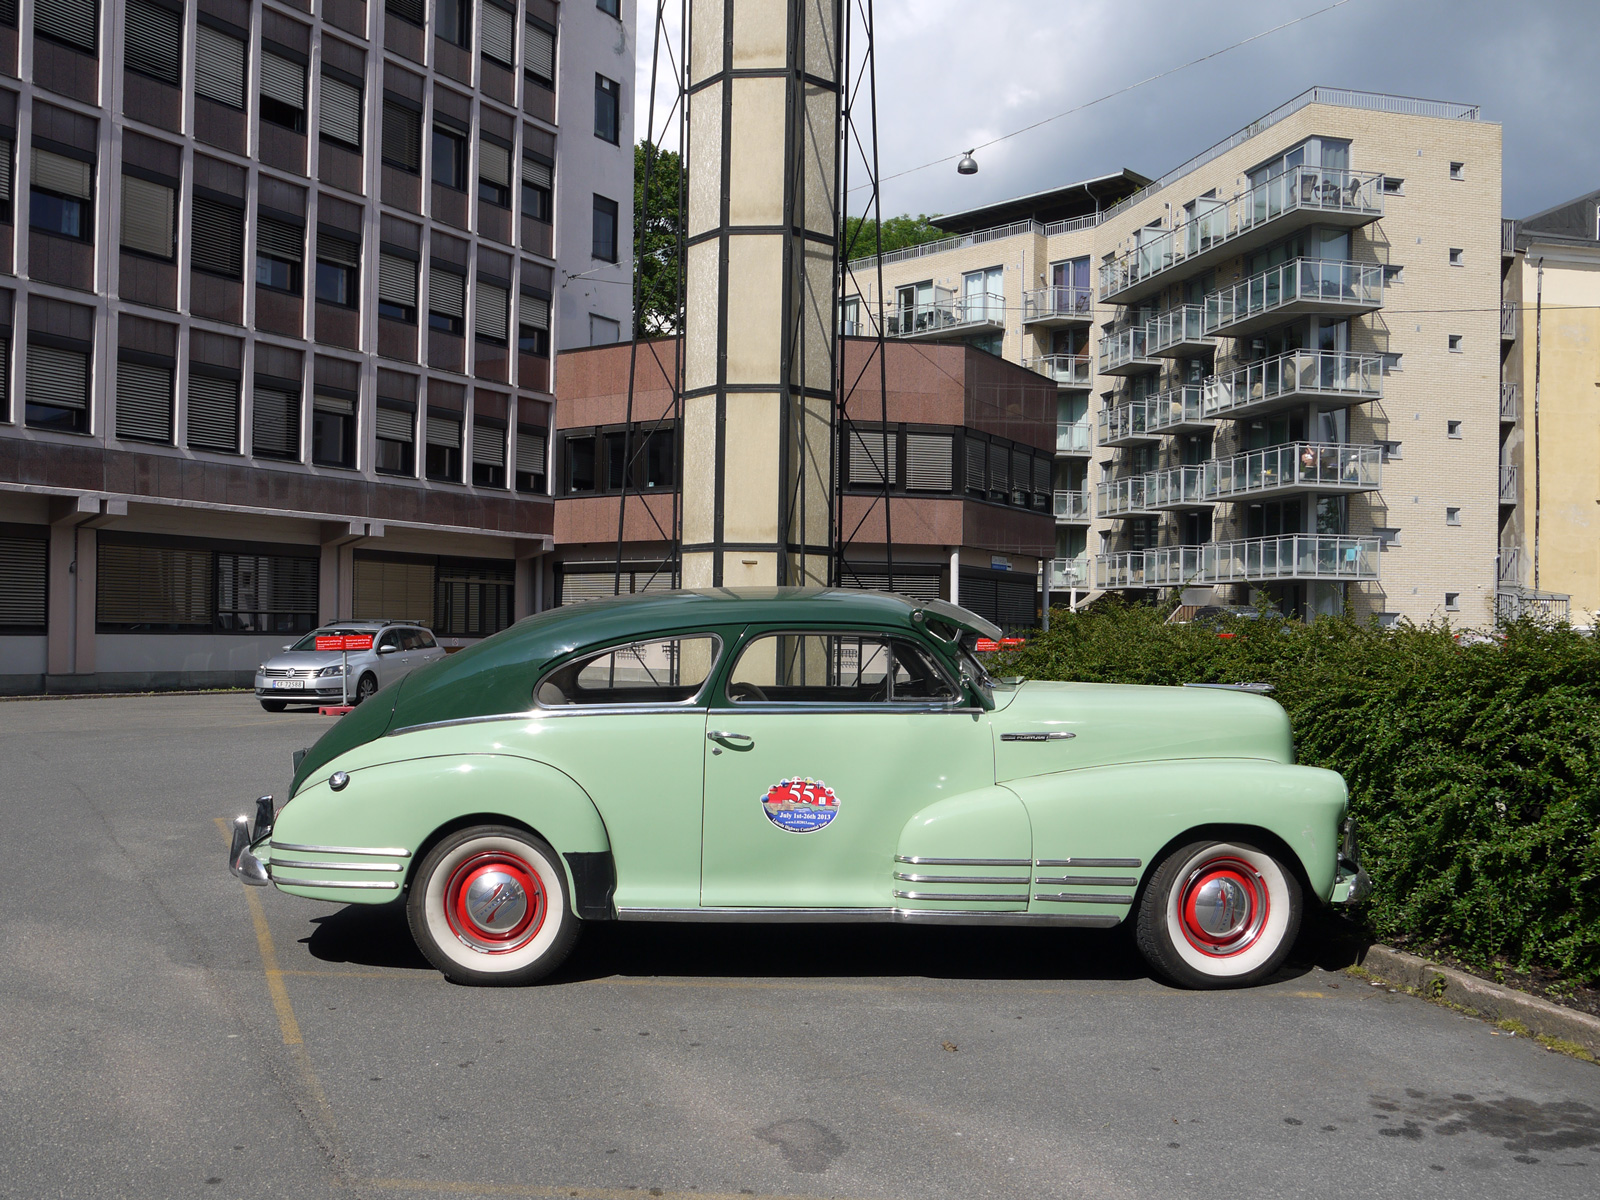 1948 Chevrolet Fleetline Fleetmaster Oslo Norway classic car street parked